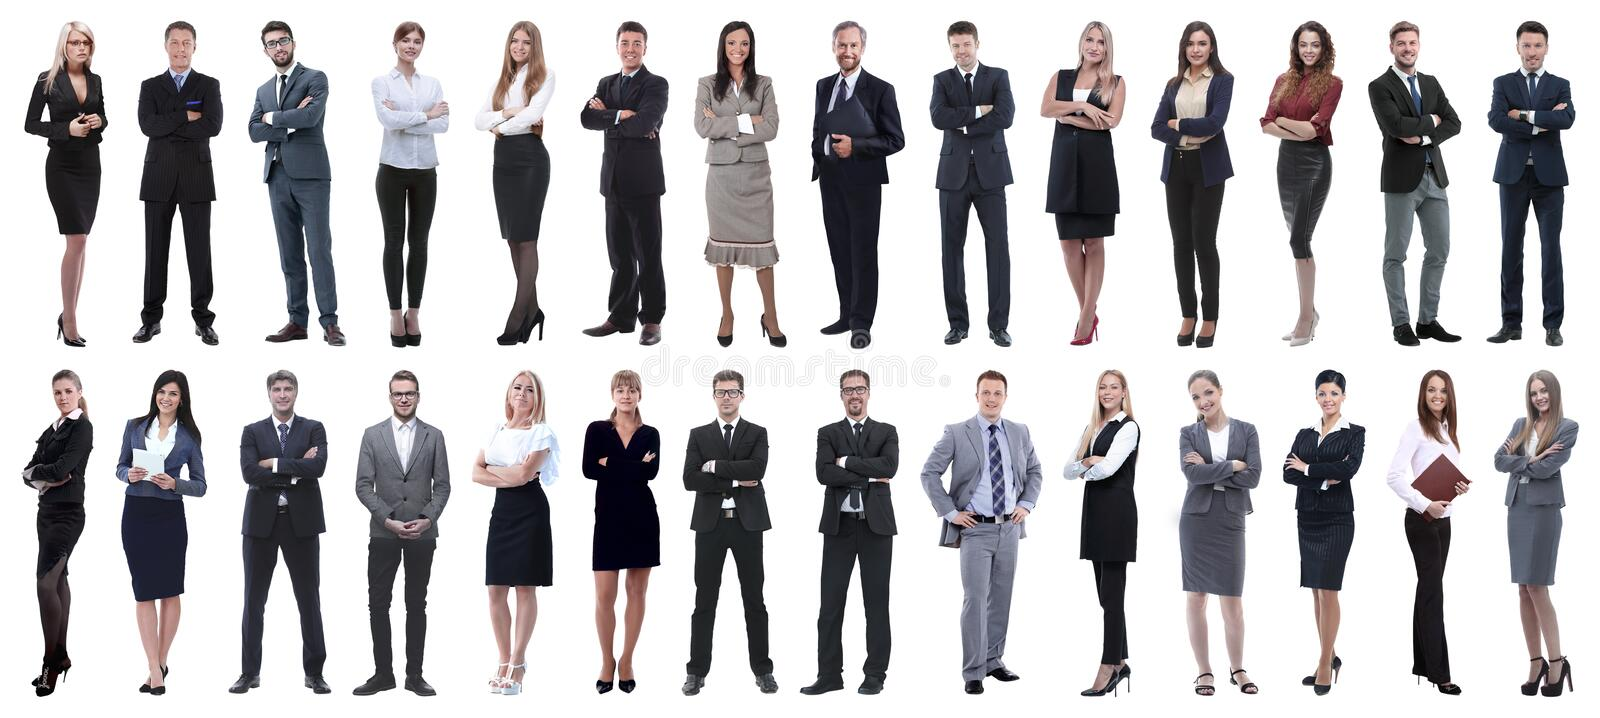 Successful business people isolated on white background royalty free stock photos